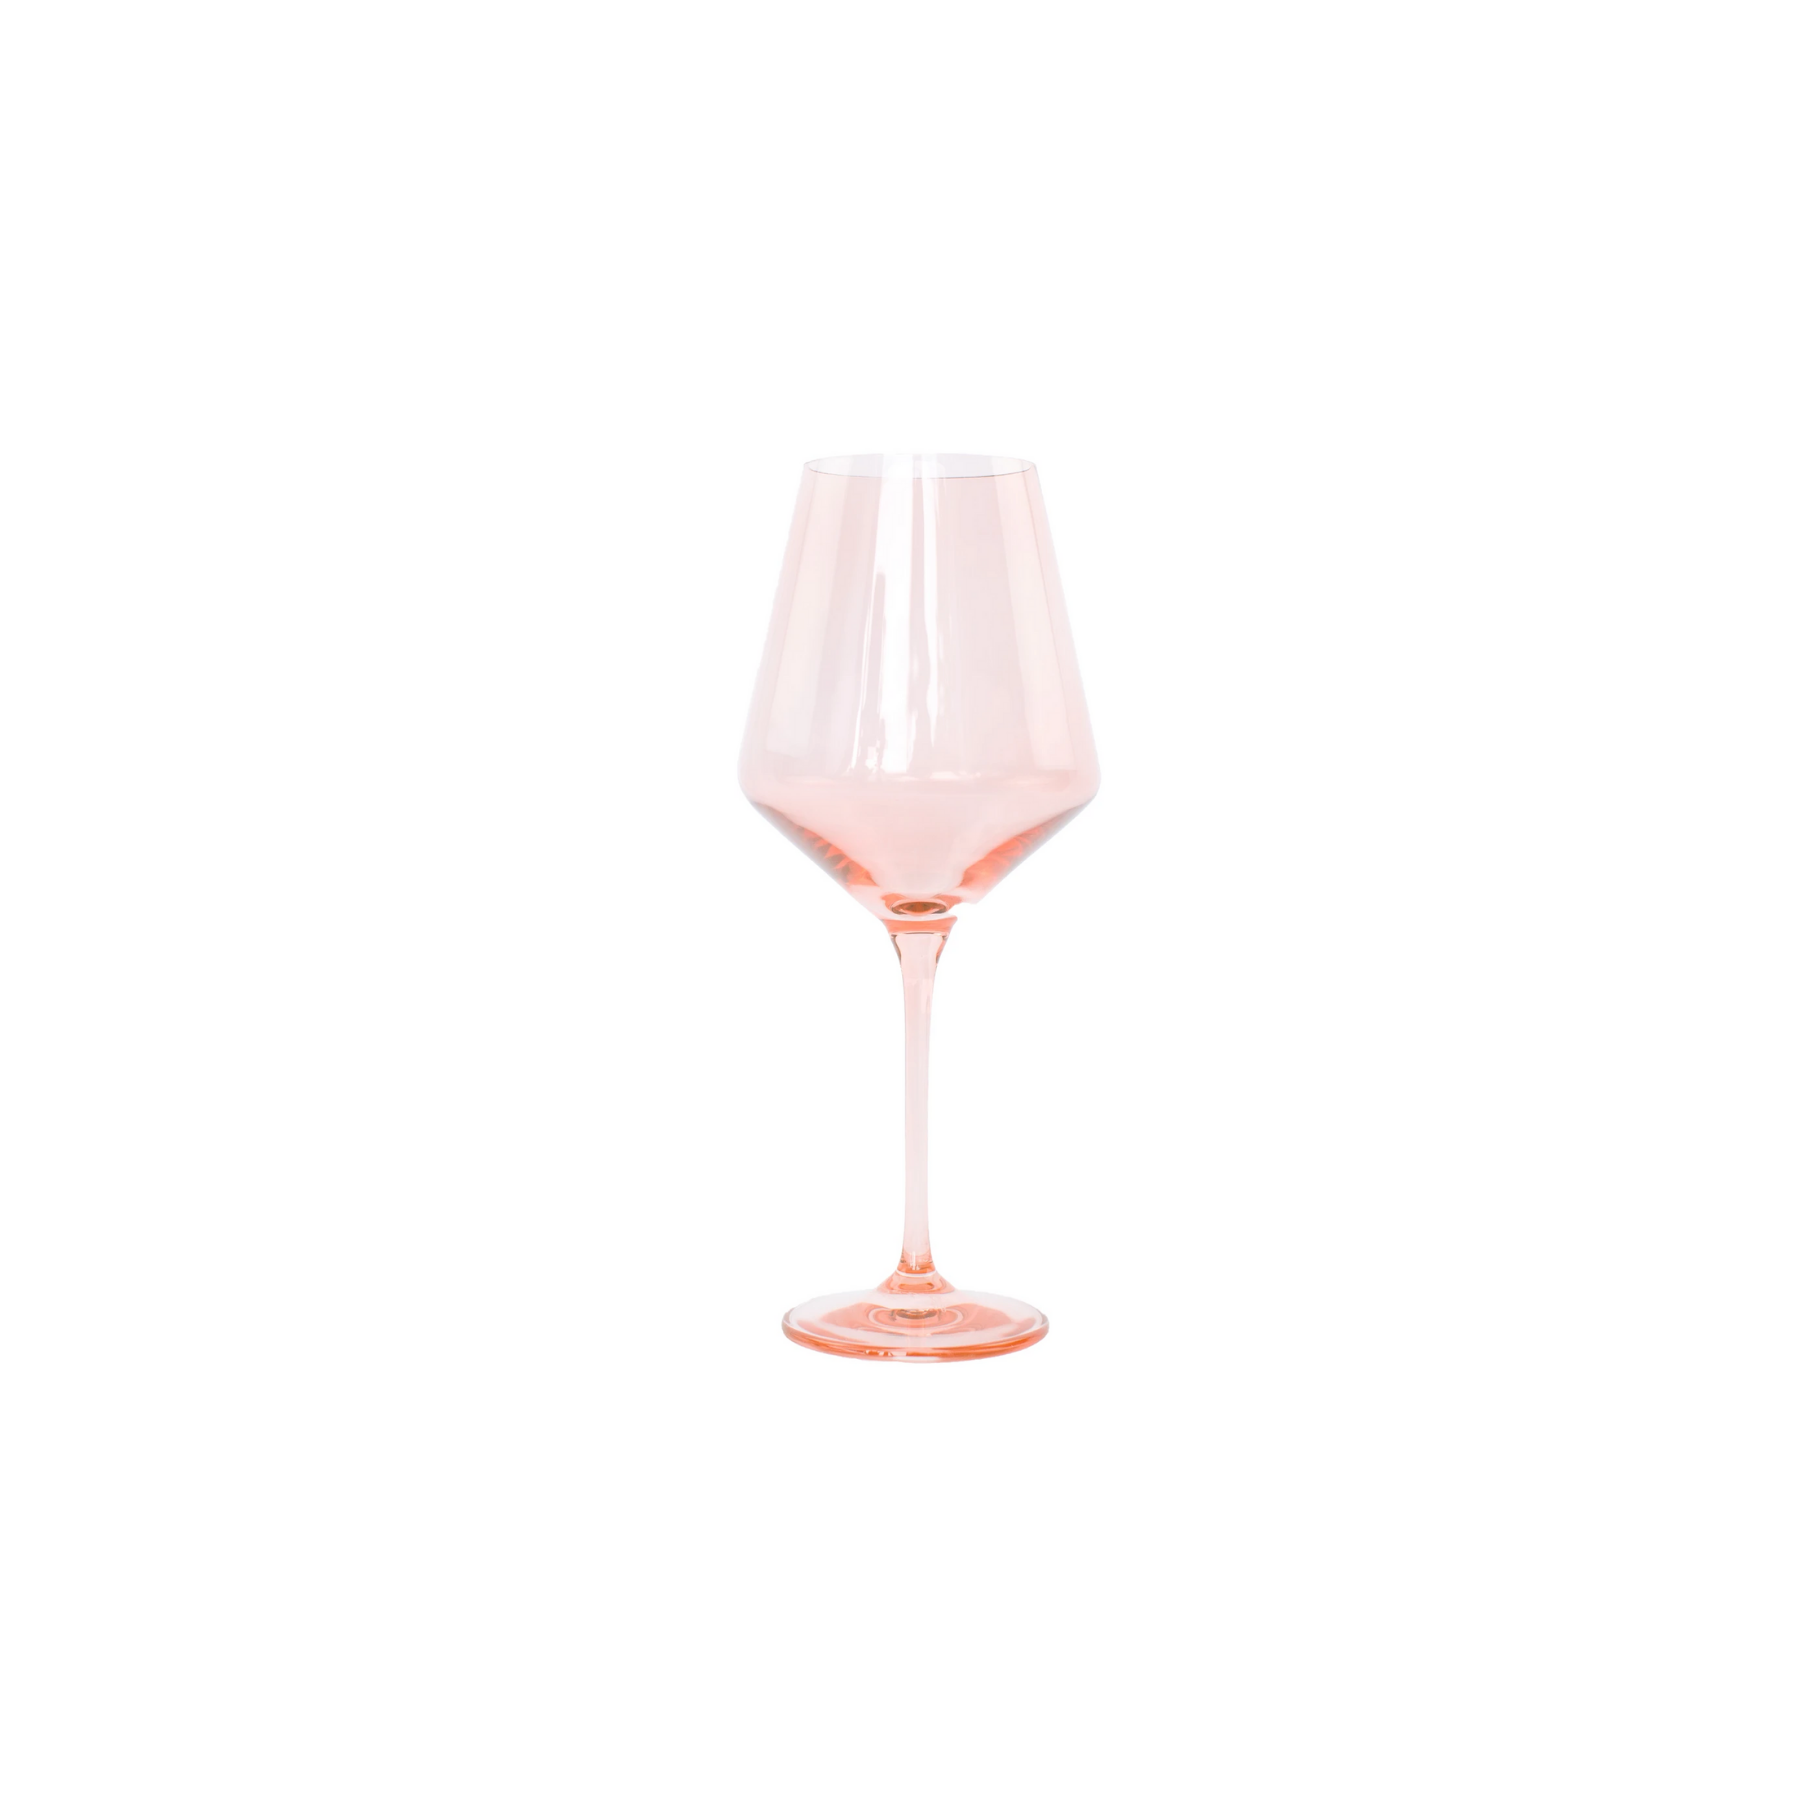 Blush Pink Wine Glasses